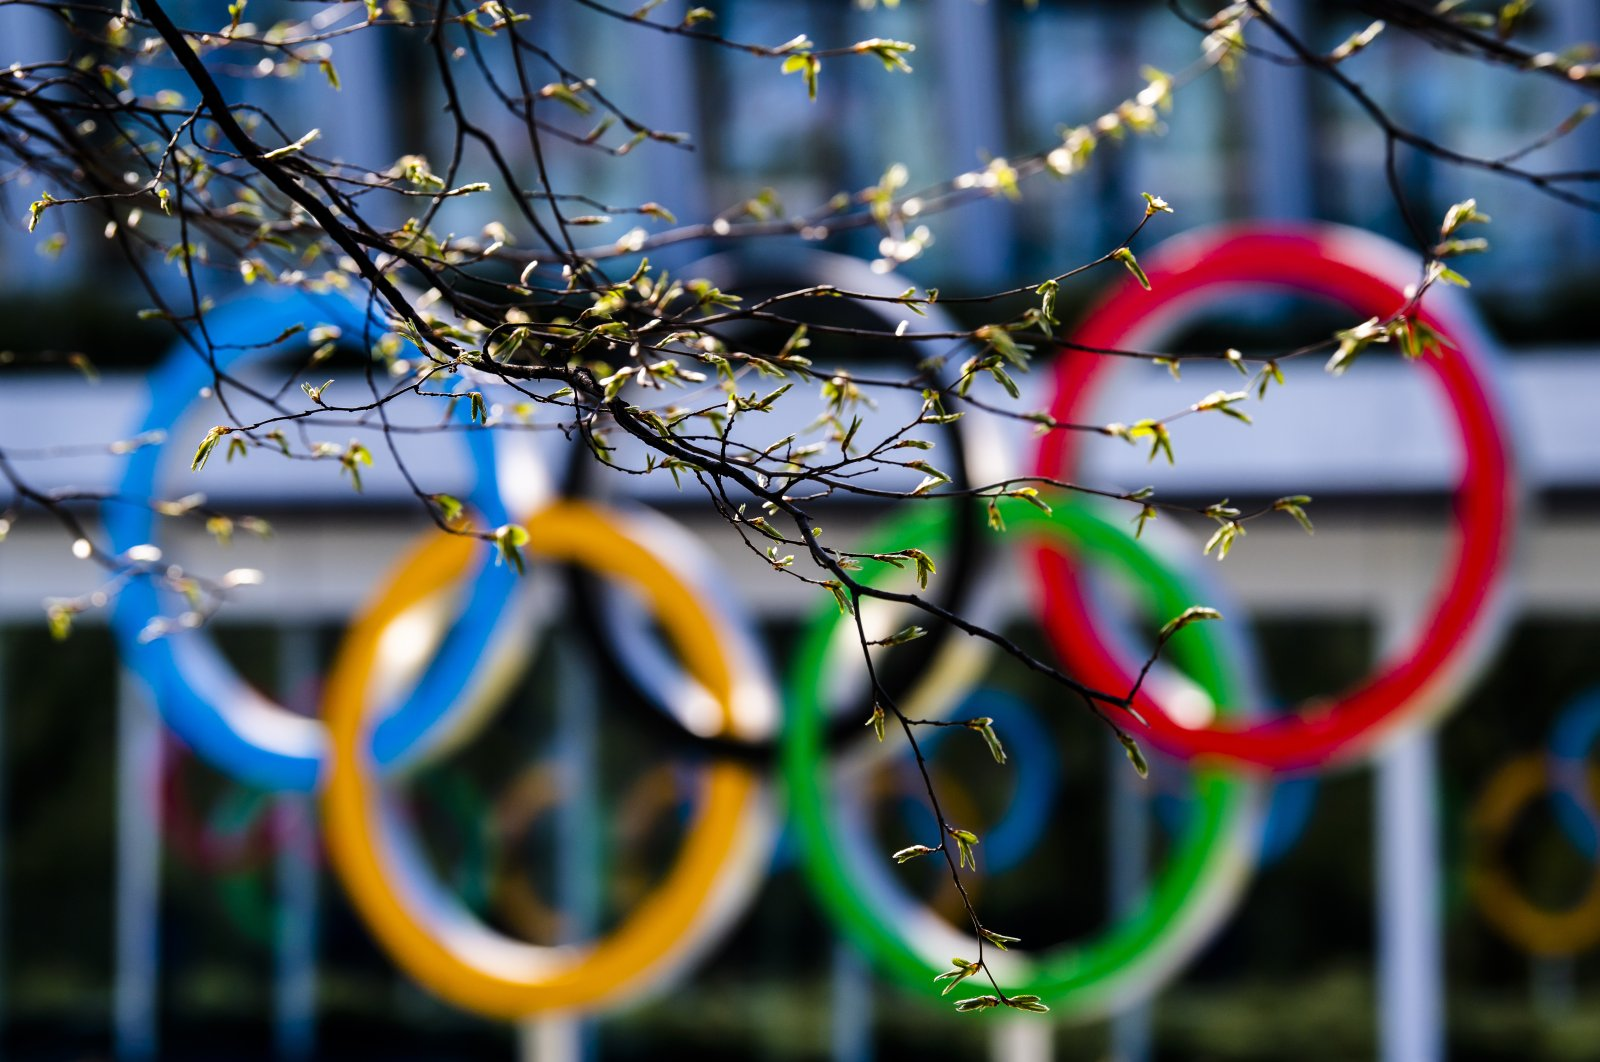 The Olympic rings are pictured at the entrance of the International Olympic Committee headquarters during the coronavirus outbreak in Lausanne, Switzerland, Tuesday, March 24, 2020. (Keystone via AP)